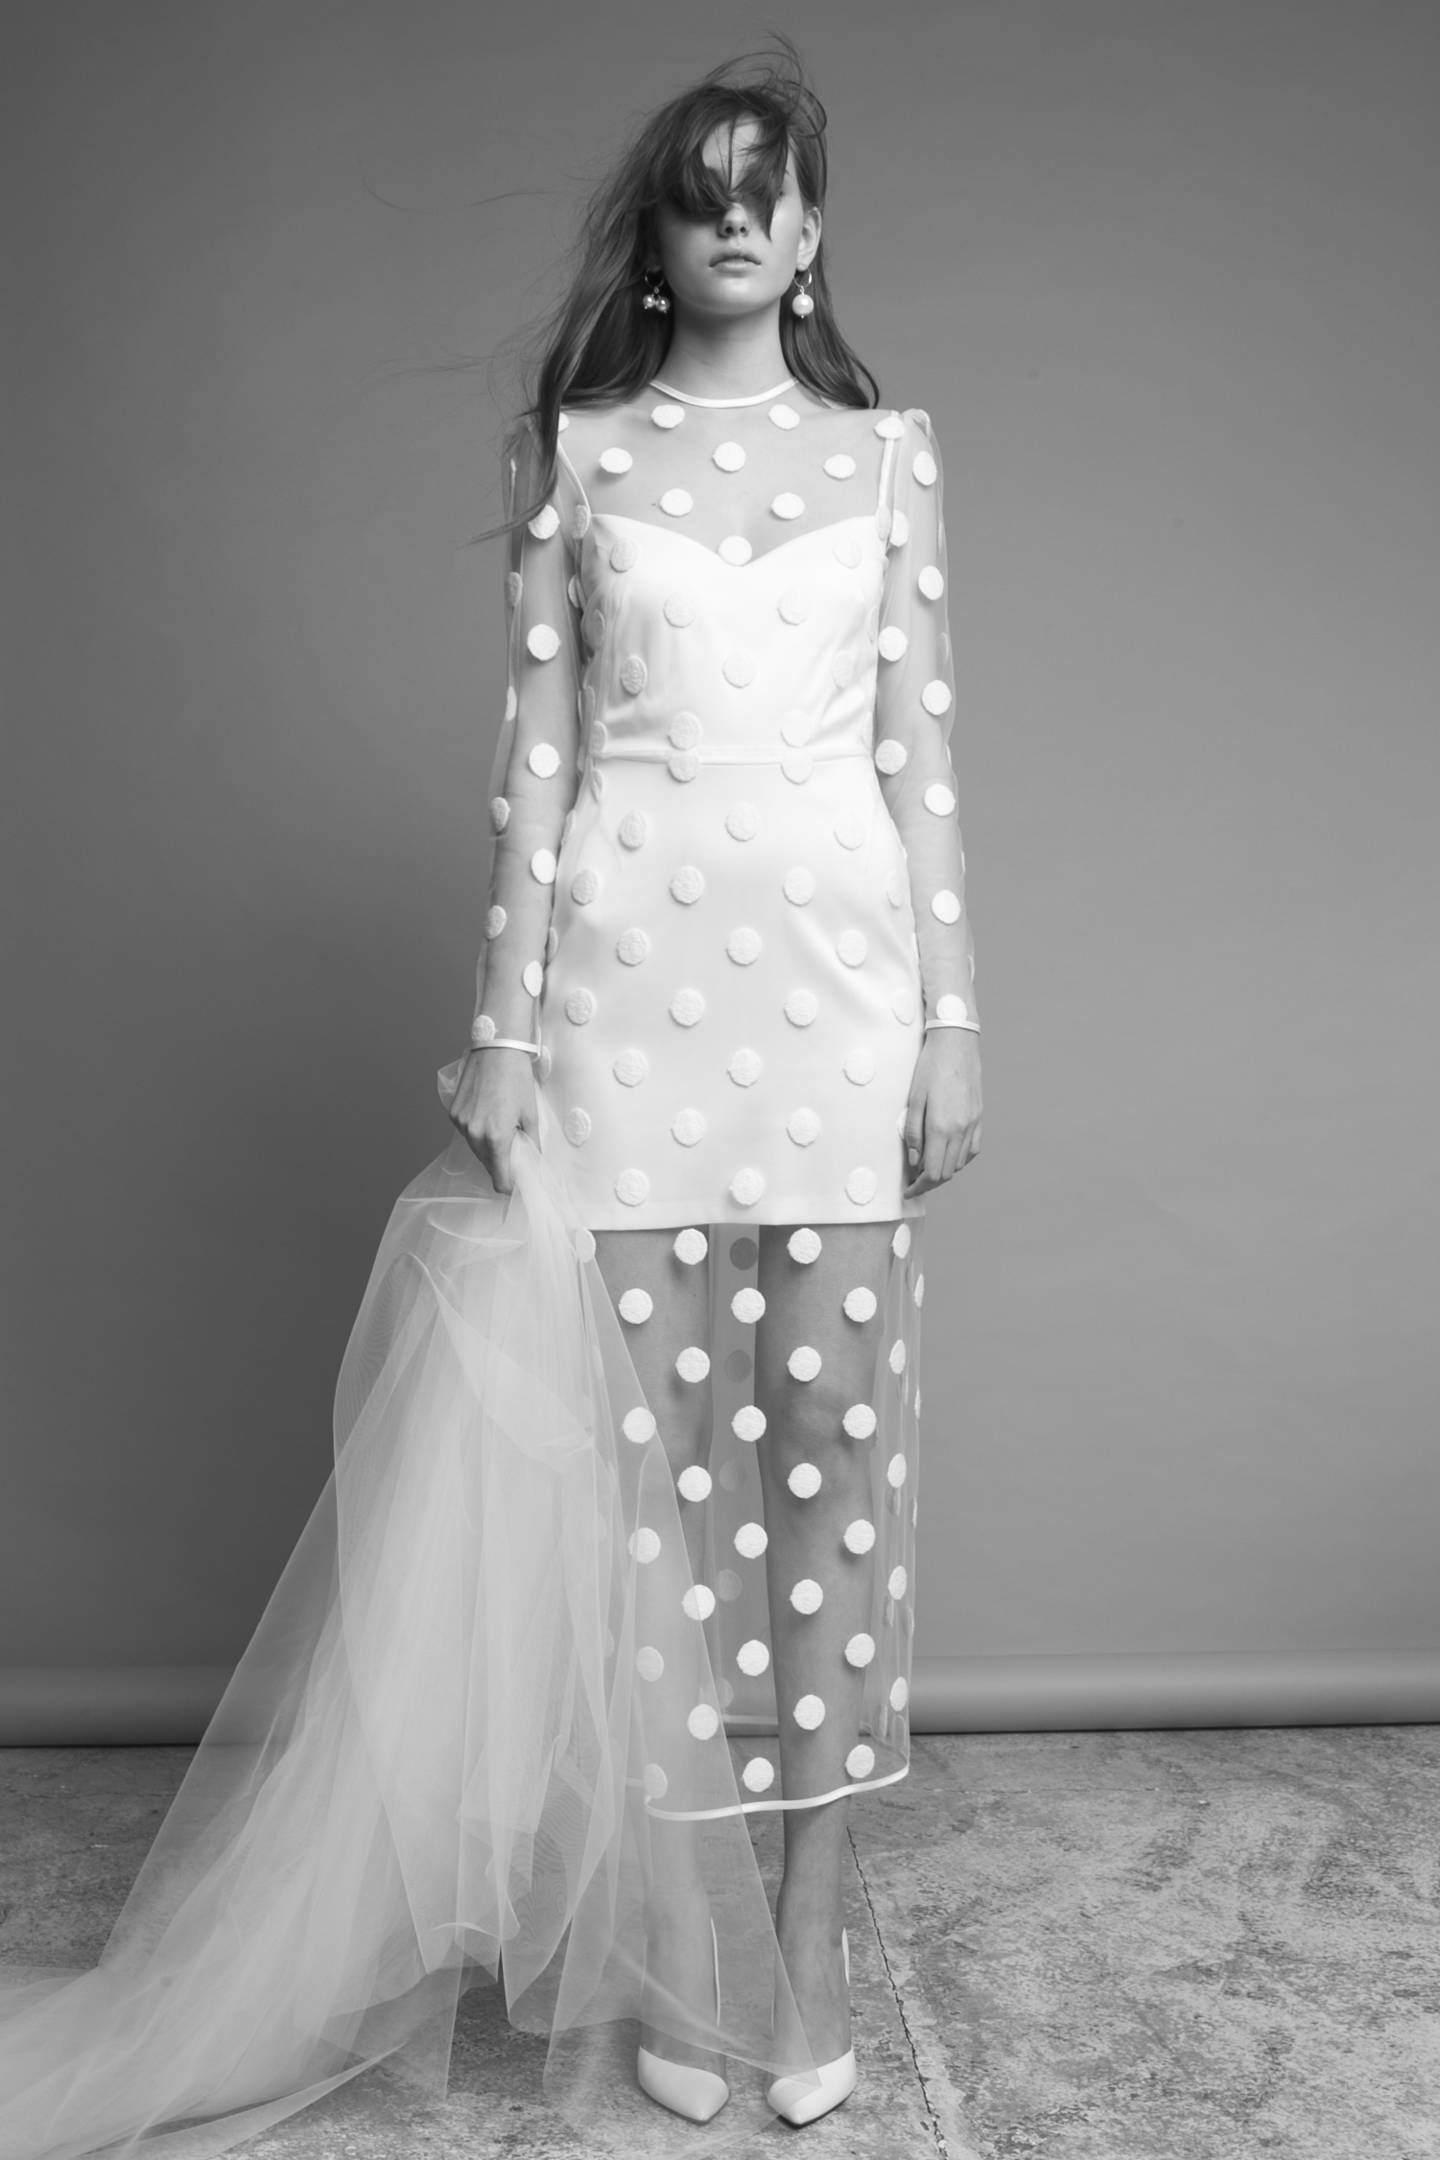 30 Gorgeous Wedding Dresses For The Non Traditional Bride Unusual Wedding Dresses Polka Dot Wedding Dress Alternative Wedding Dresses